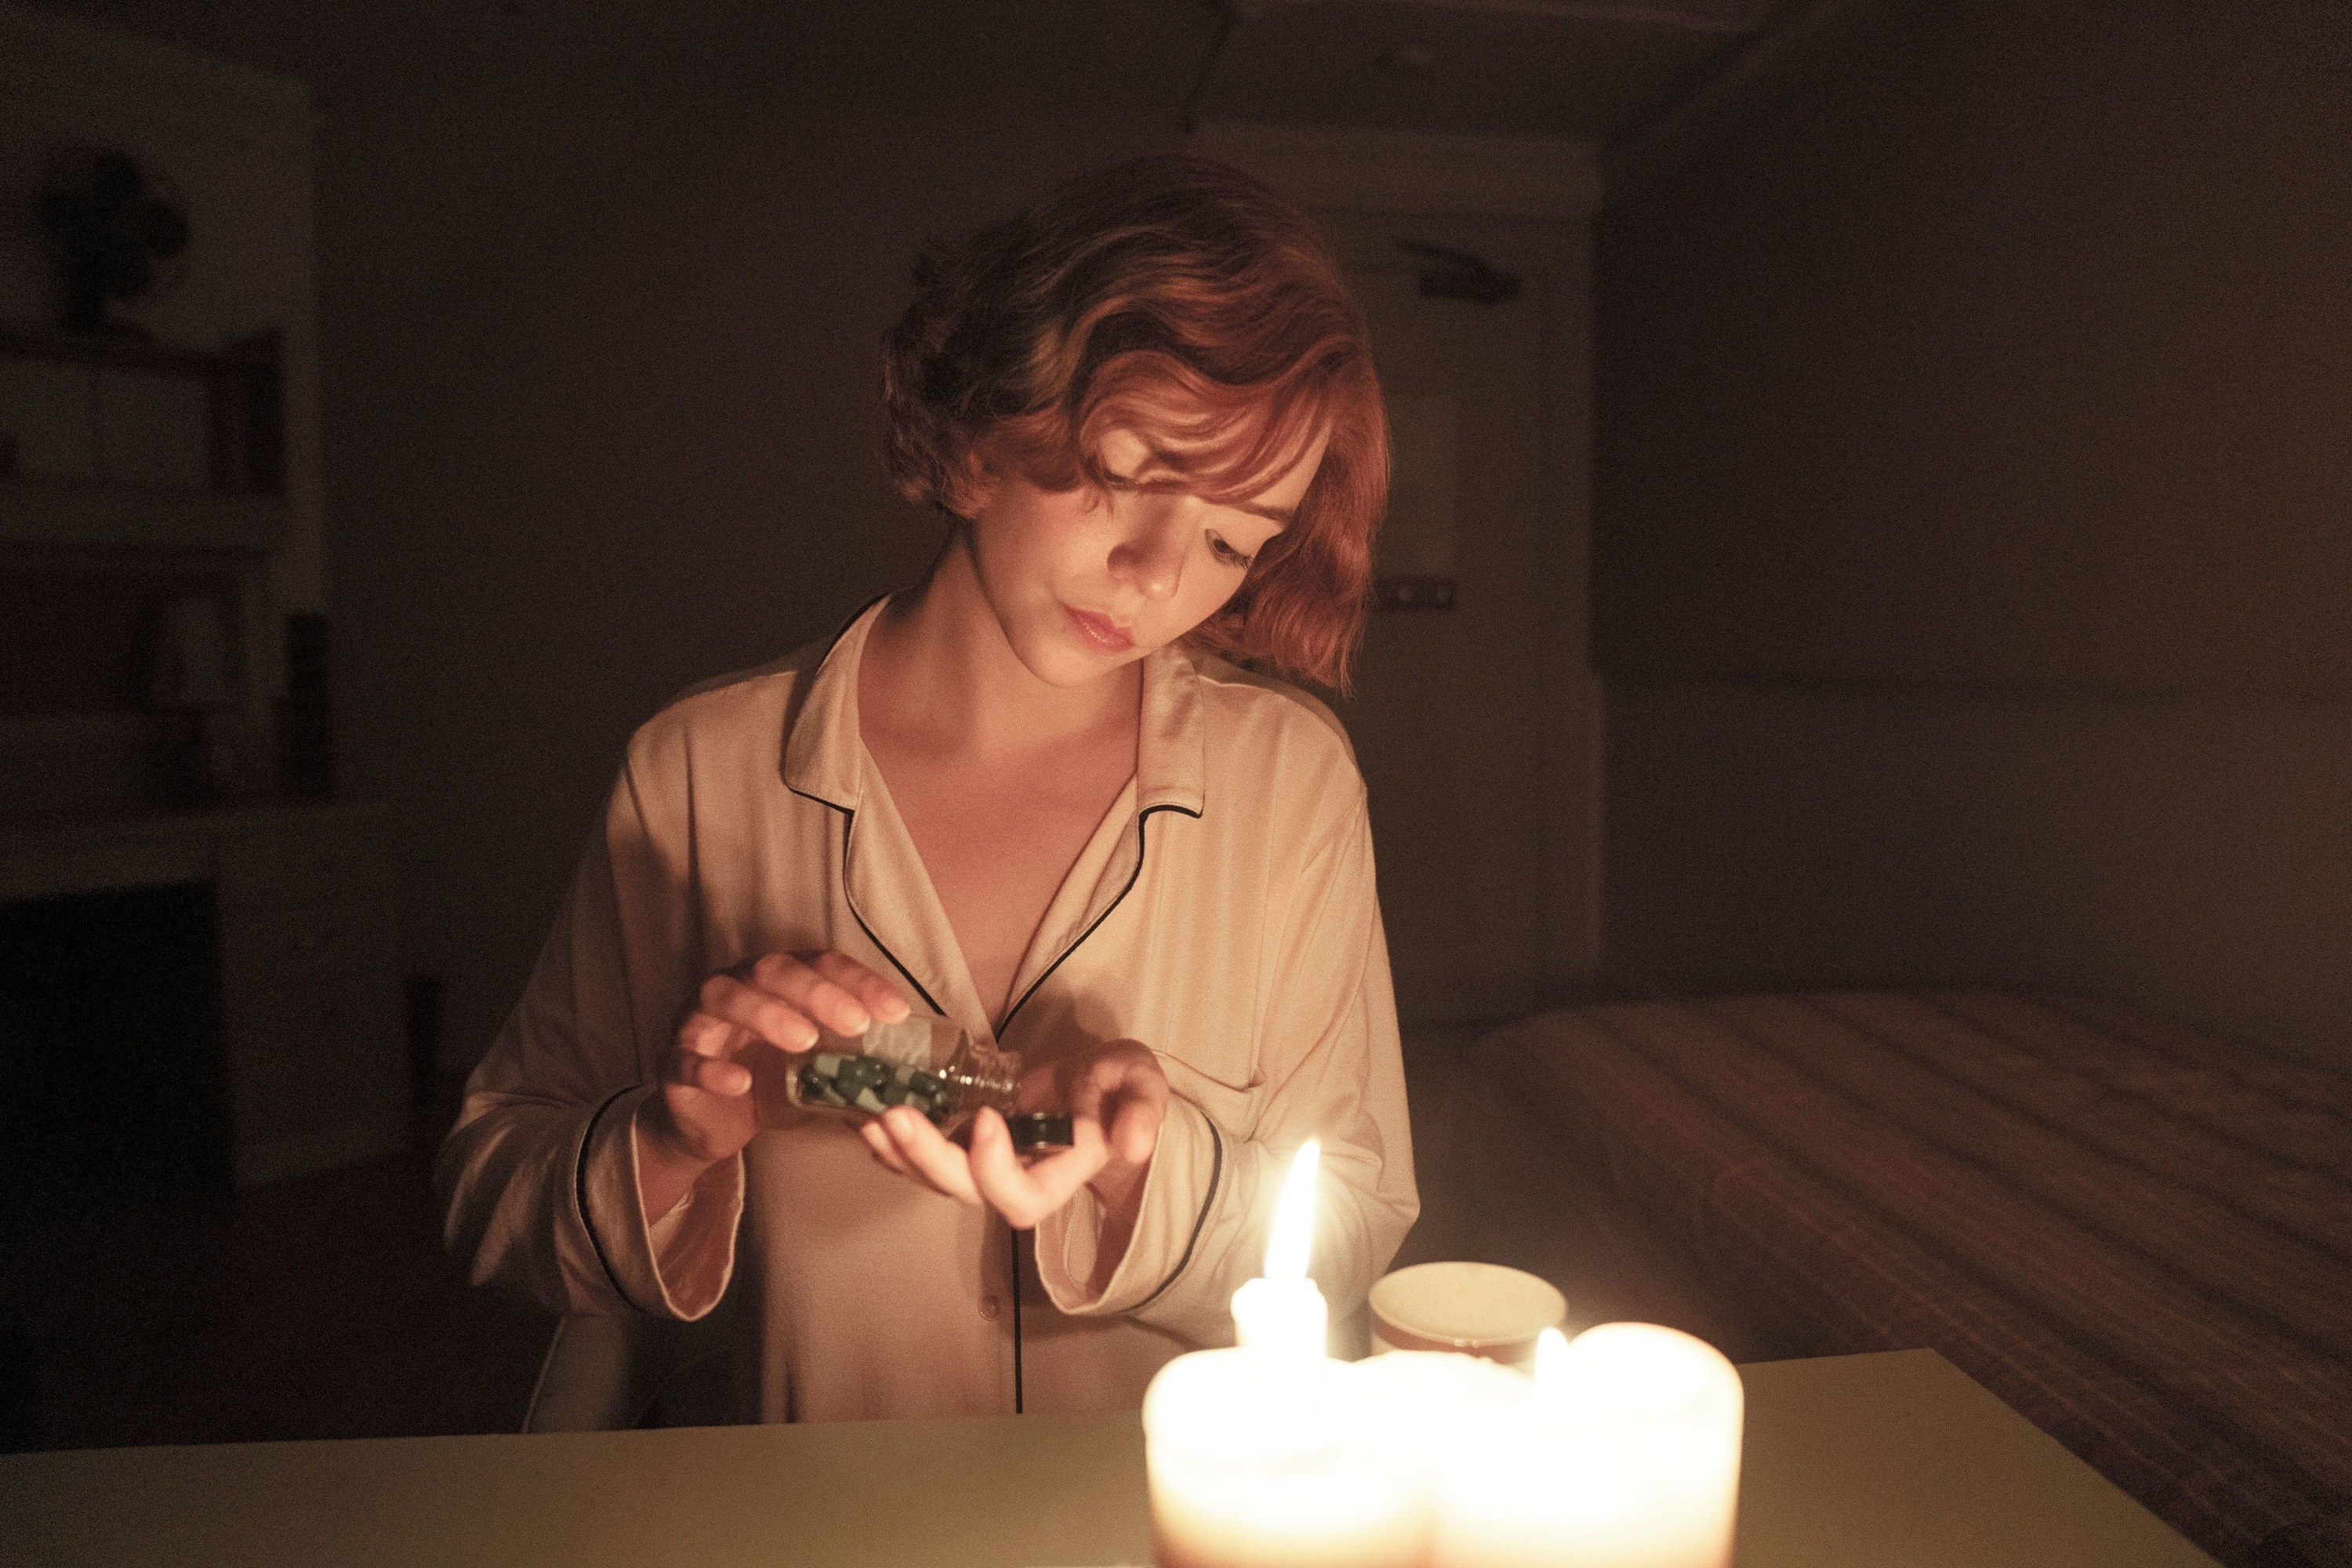 Woman taking some pills out of a bottle by candlelight